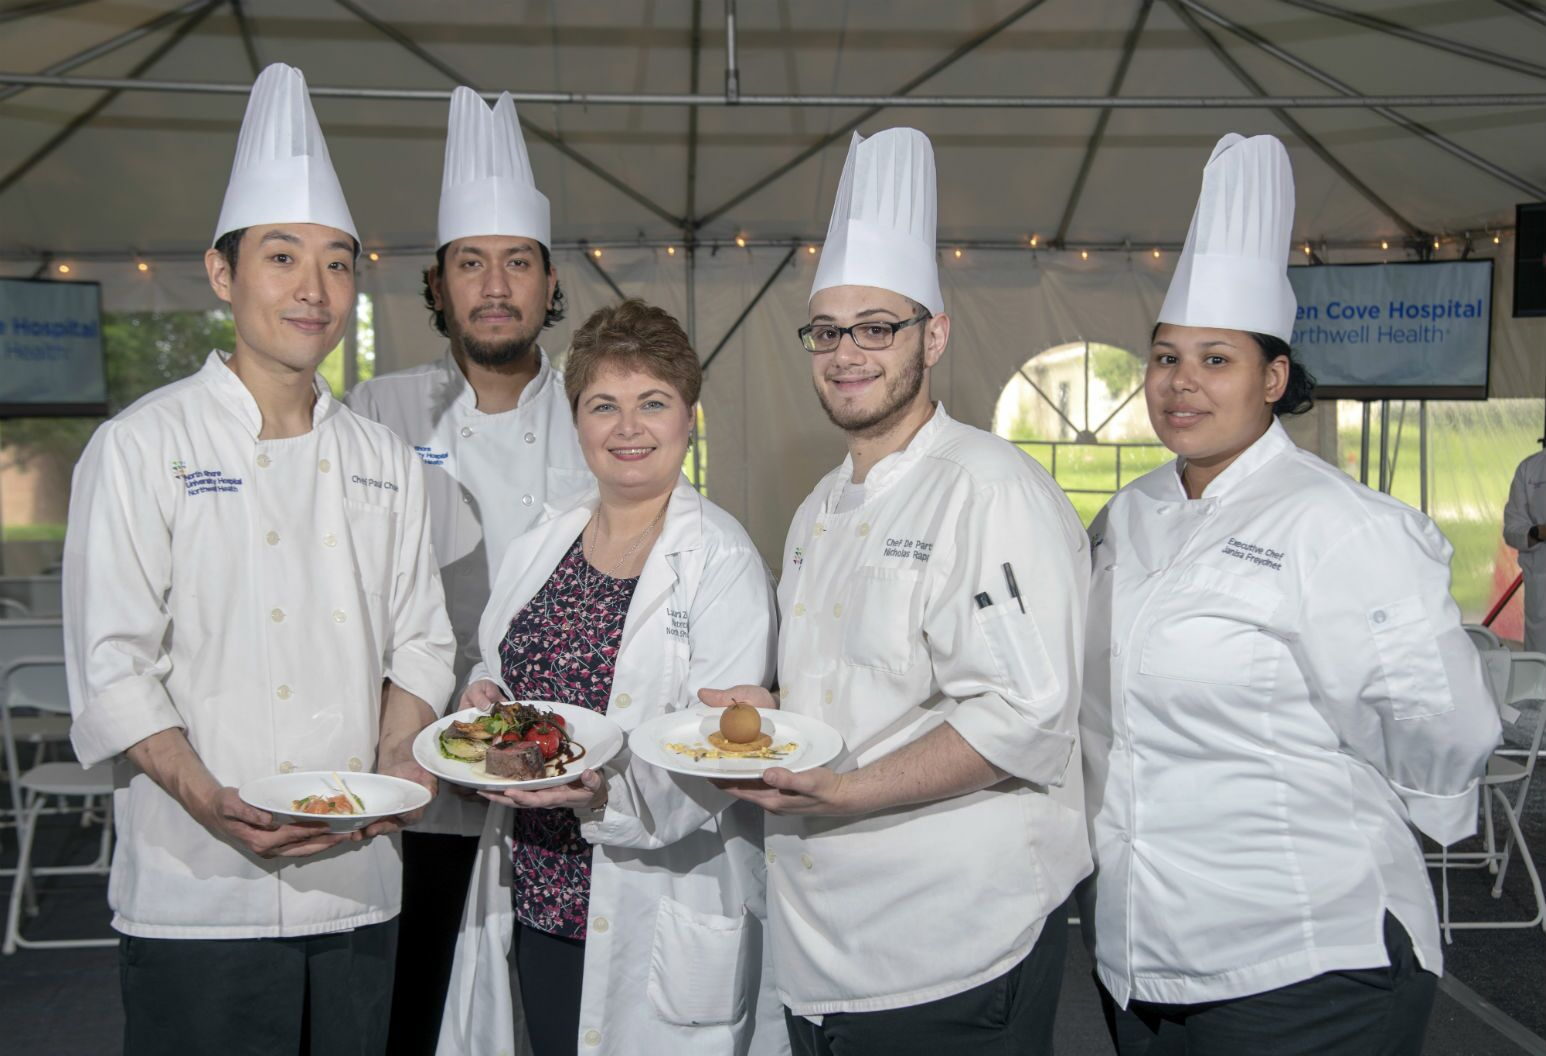 North Shore University Hospital's Gyalsten Ethenpa, Paul Choe, Nicholas Rappa, Janisa Freycinet and Laura Zelenka Dufresne, RD, with their winning dishes from the 2019 Northwell Health Ultimate Chef Challenge.